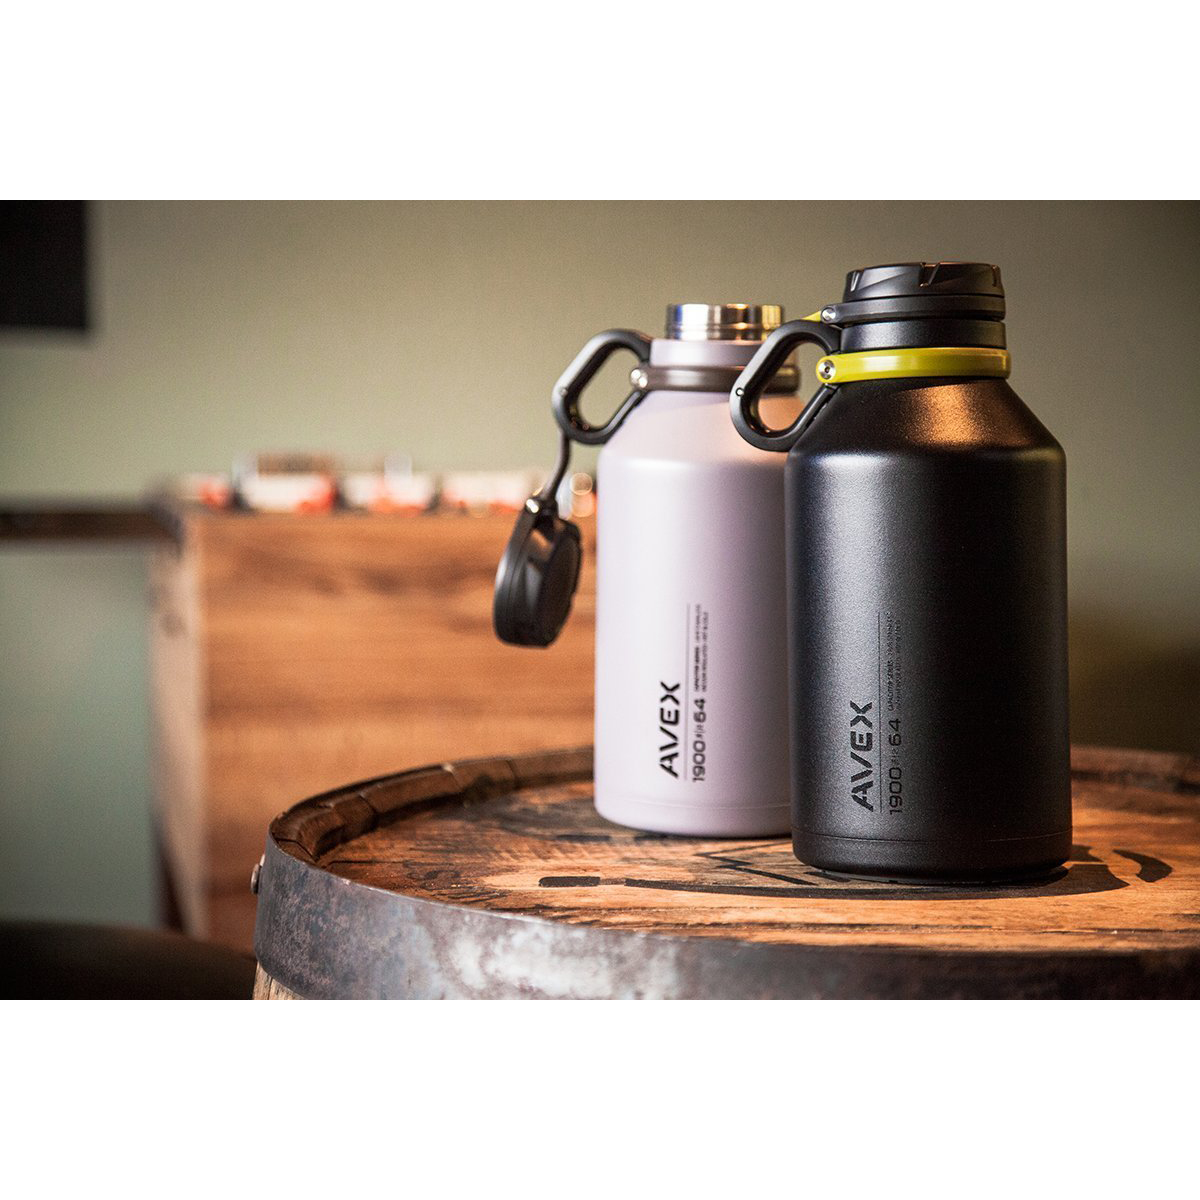 Avex 64 Oz Growler Vacuum Insulated Stainless Steel